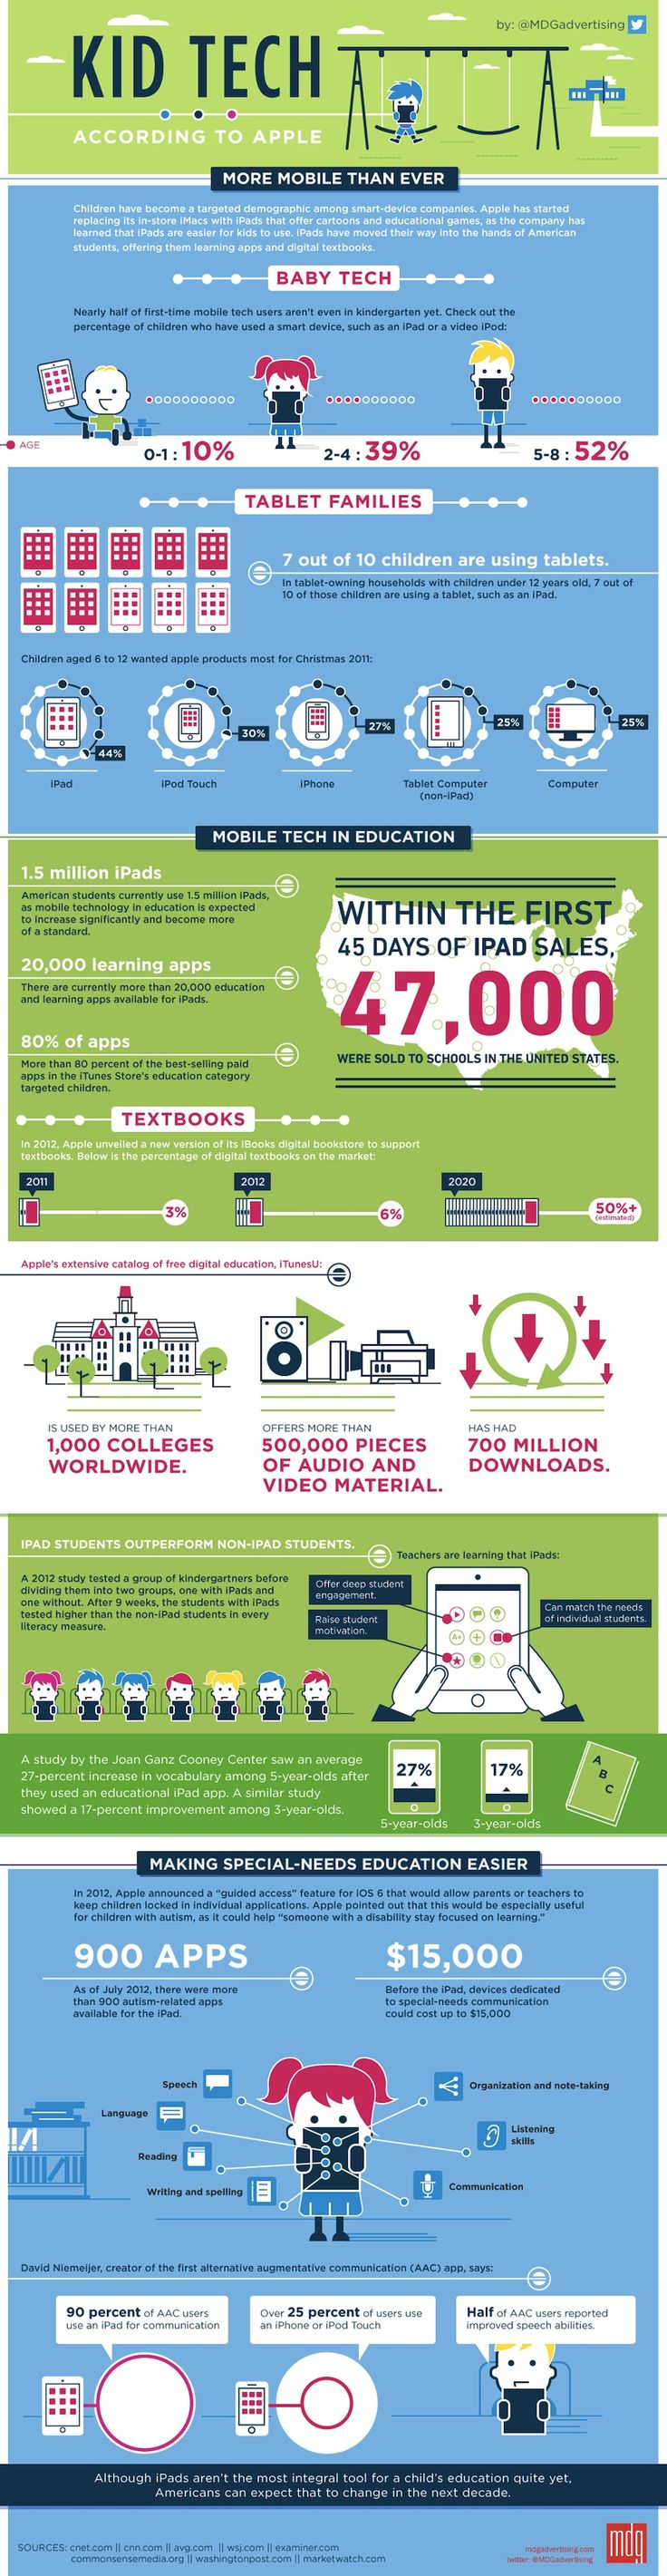 Kid Tech Infographic:  Internet Site, Kids Tech Infographic,  Website, Special Education, Young Children, Apple, New Technology, Web Site, Kids Education